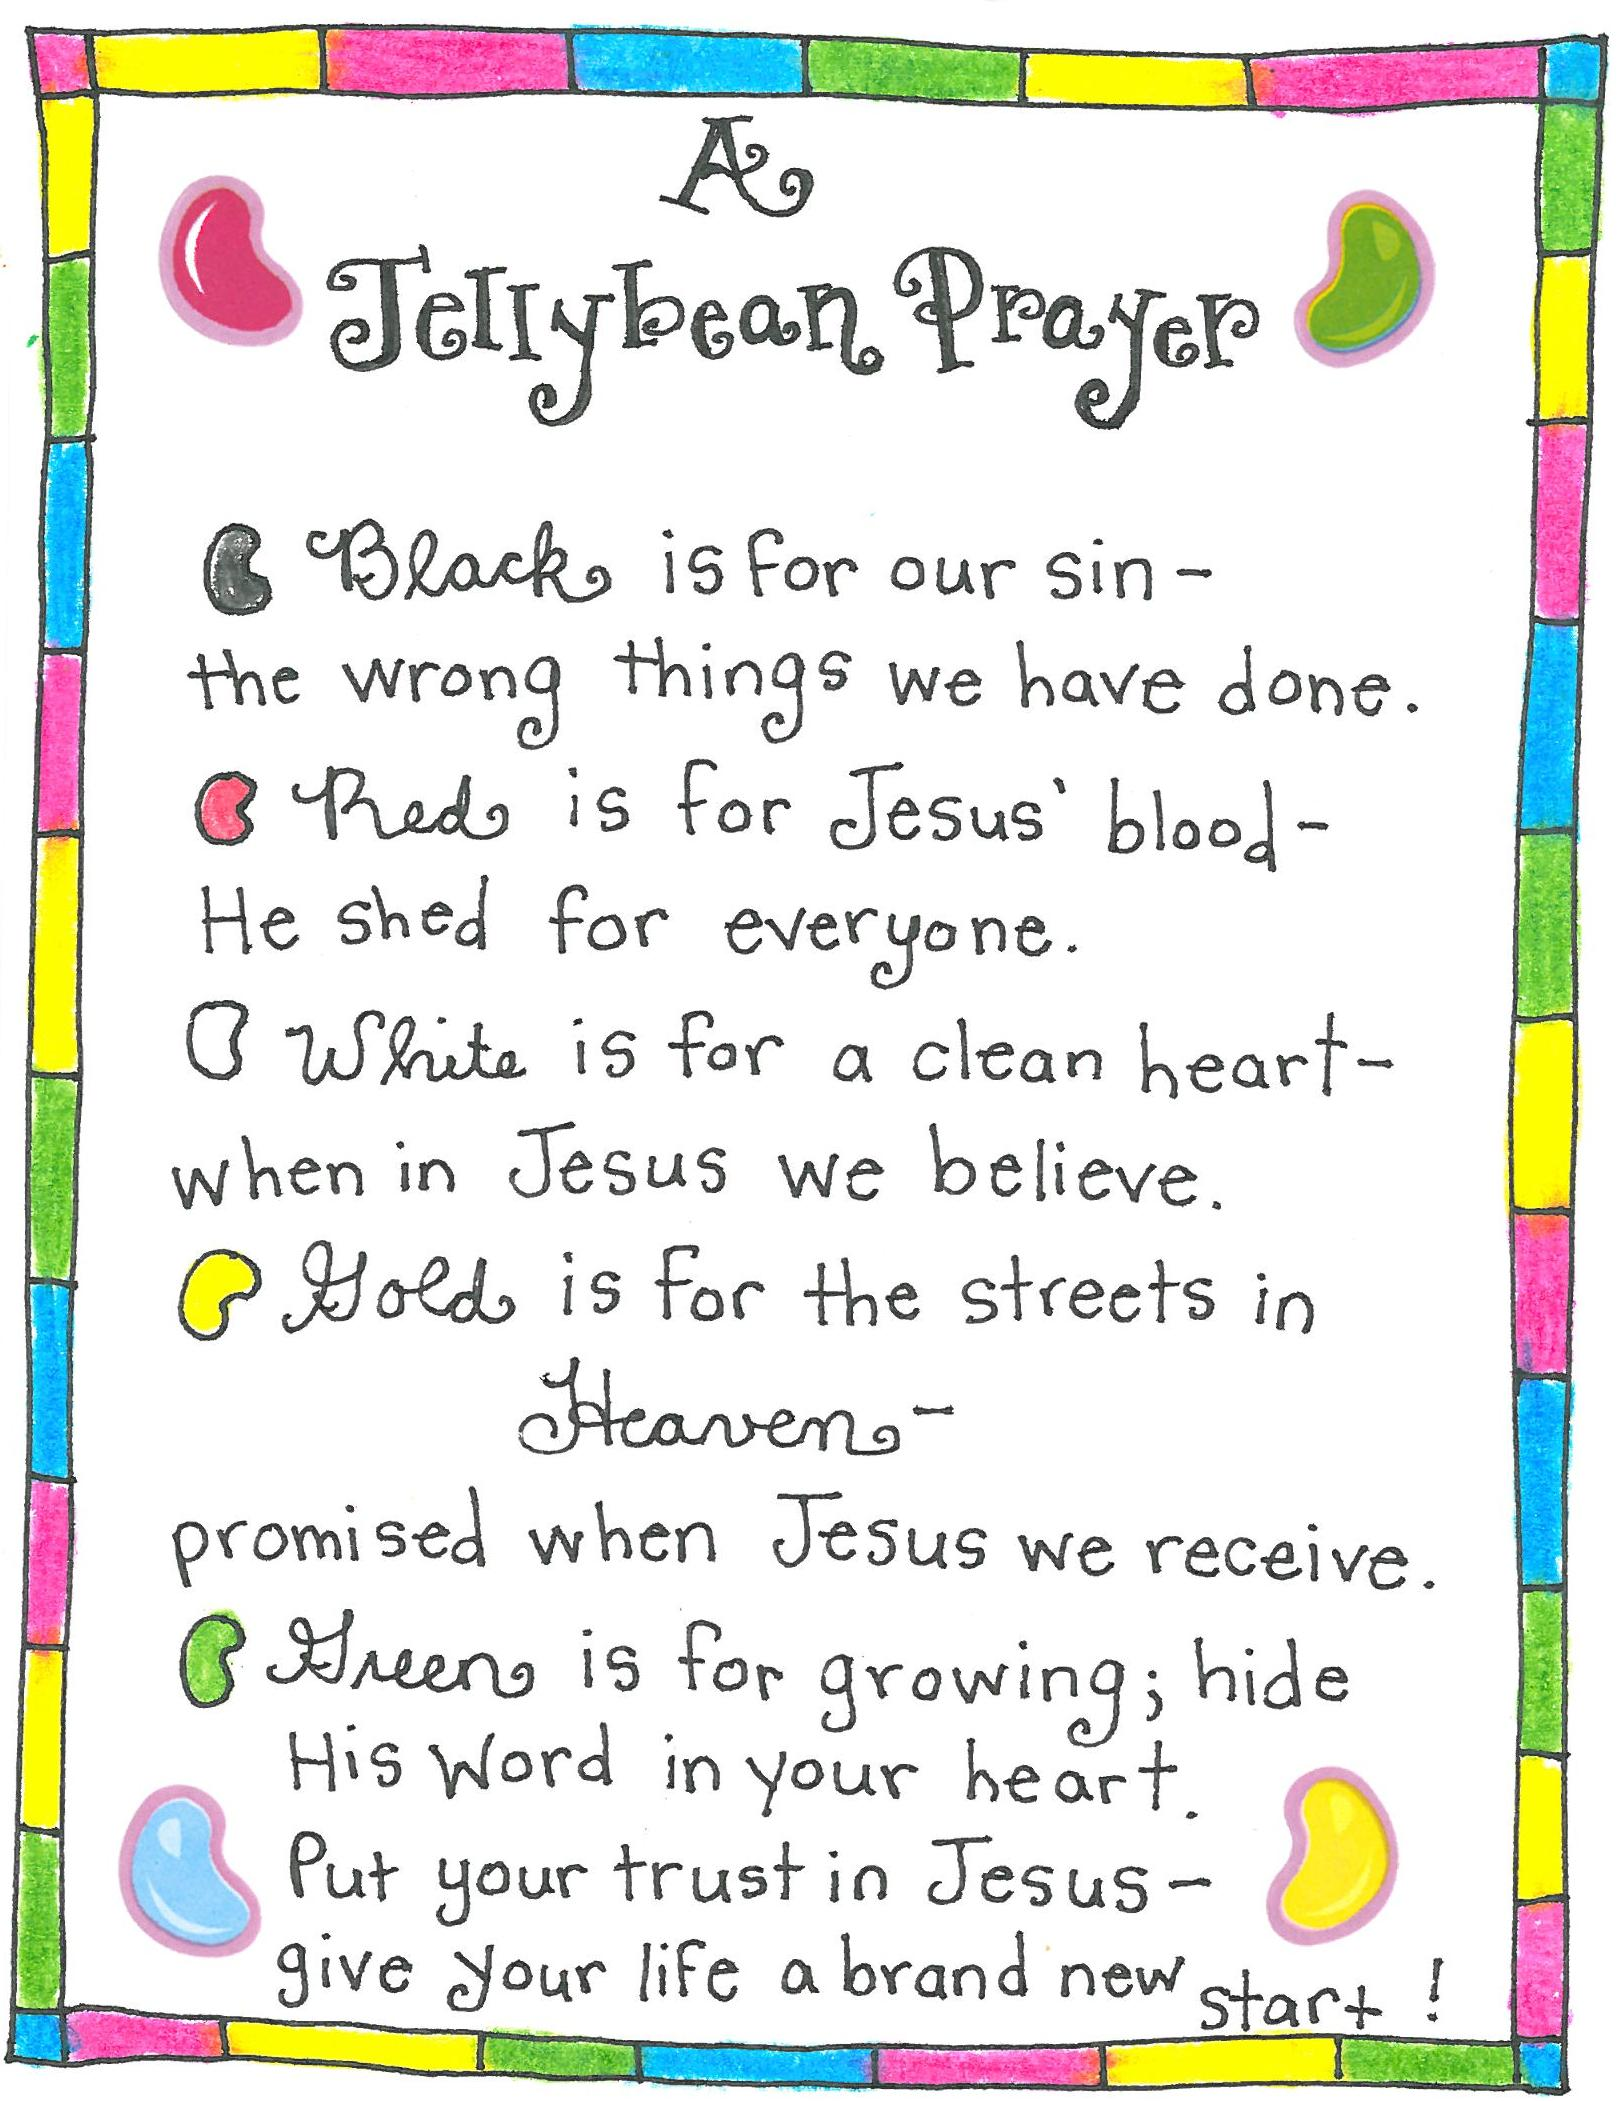 The Jellybean Prayer